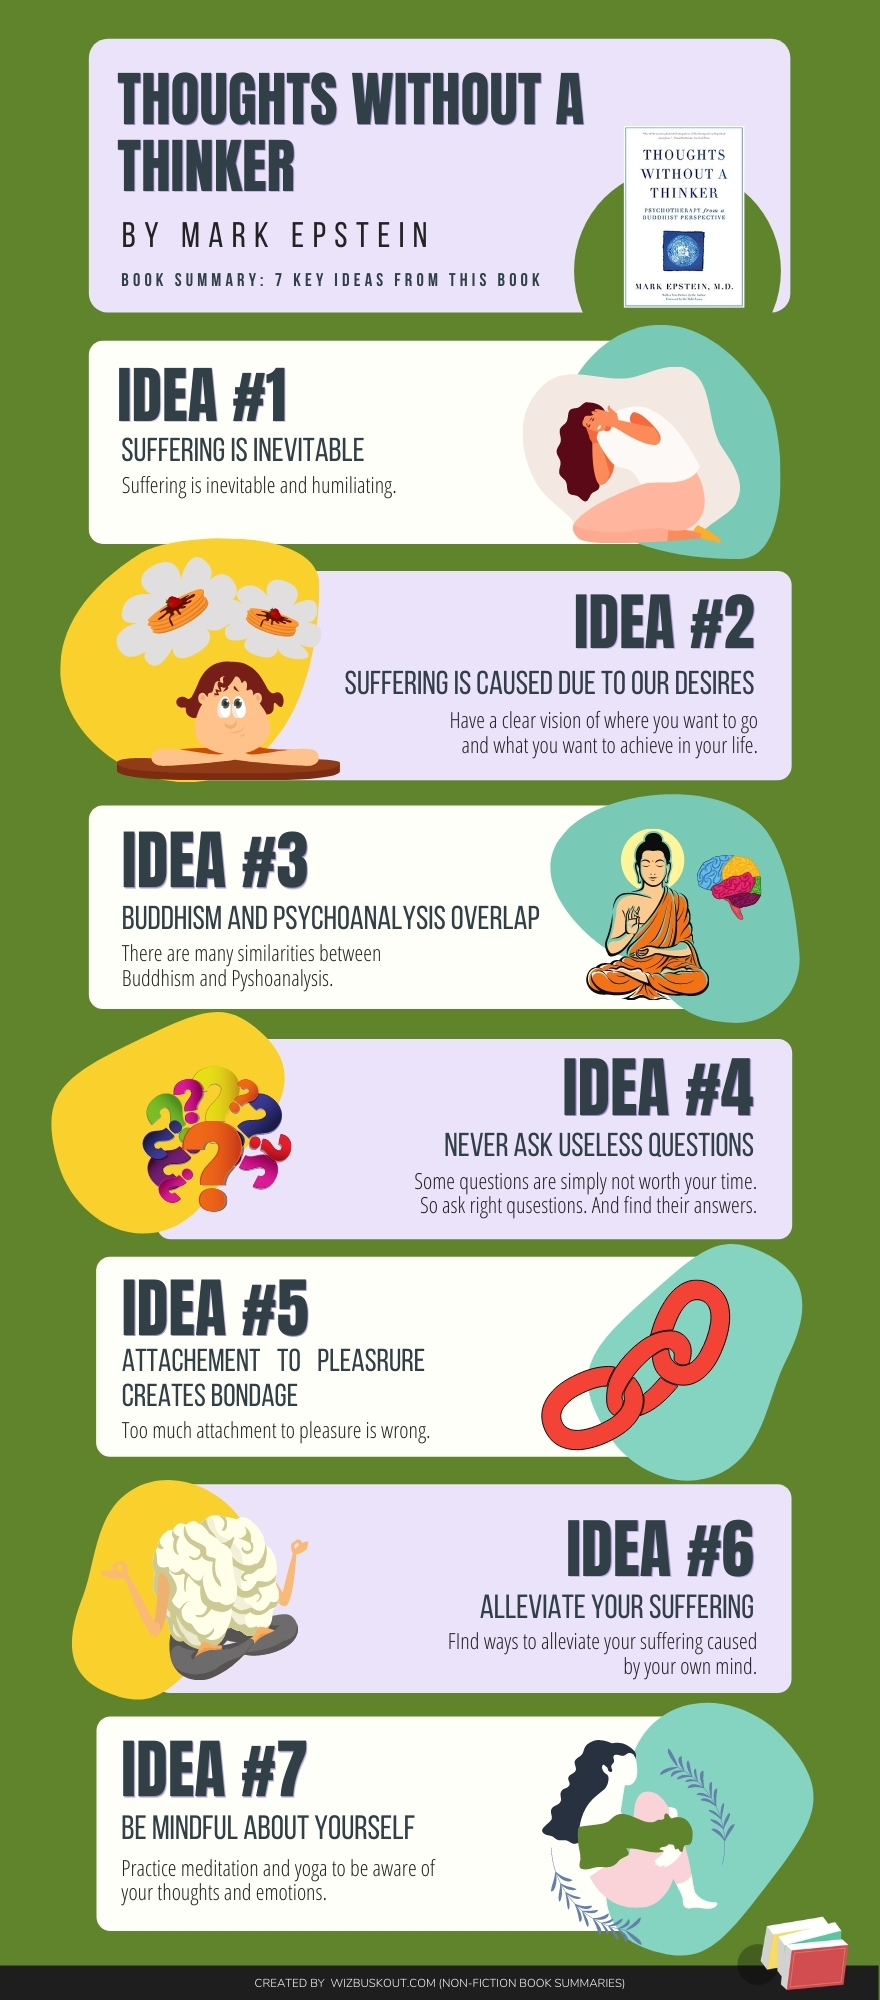 Thoughts Without A Thinker Summary Infographic